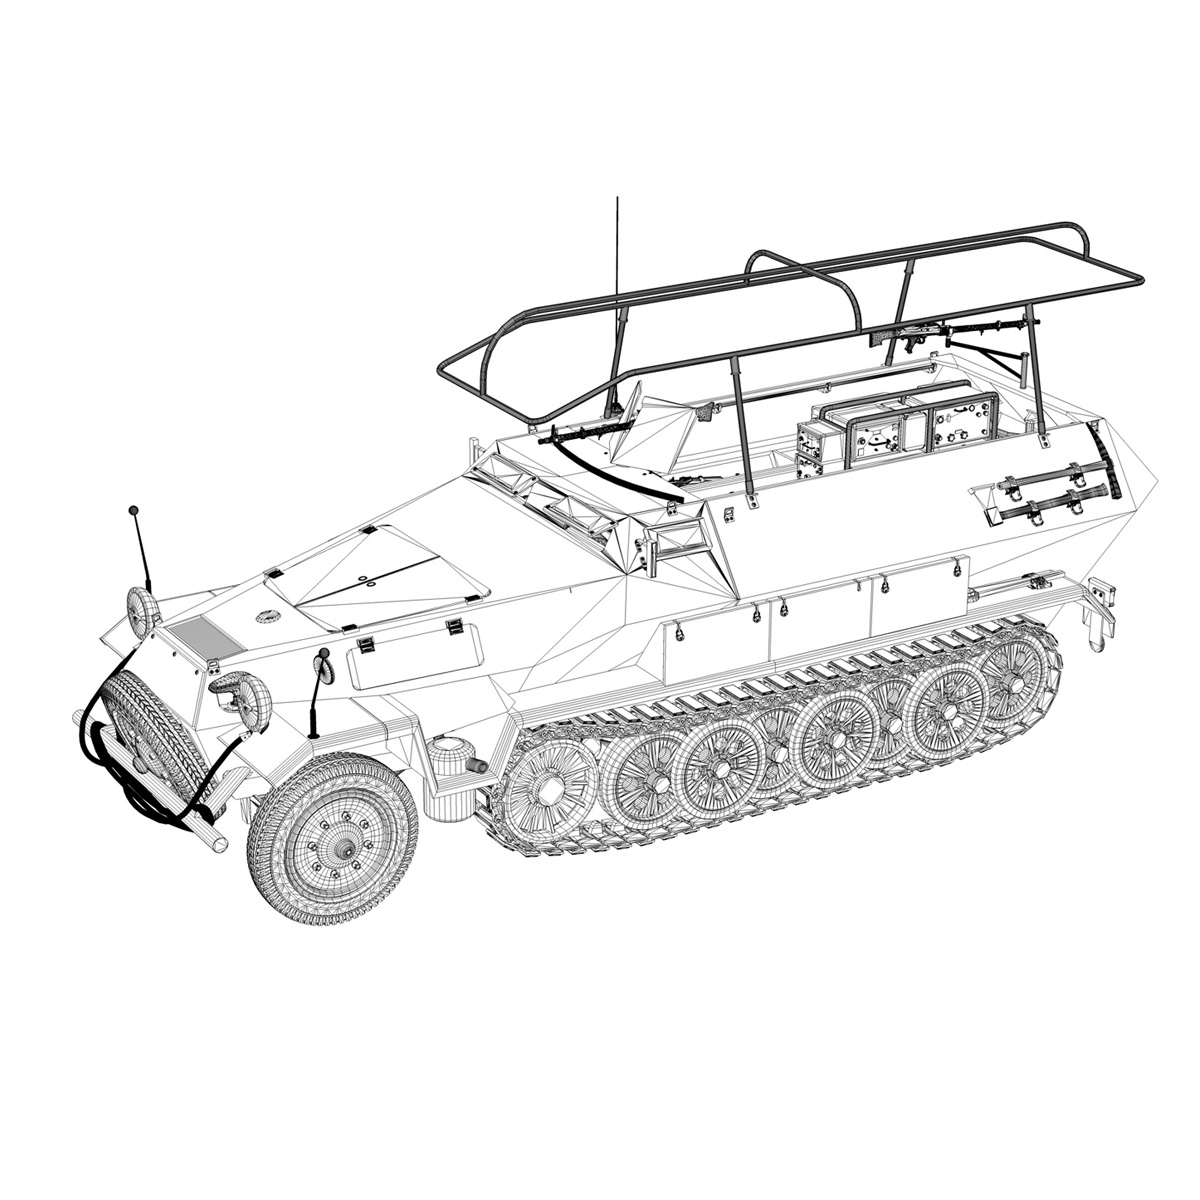 sd.kfz 251 ausf b – communications vehicle – 8pd 3d model 3ds fbx lwo lw lws obj c4d 292036